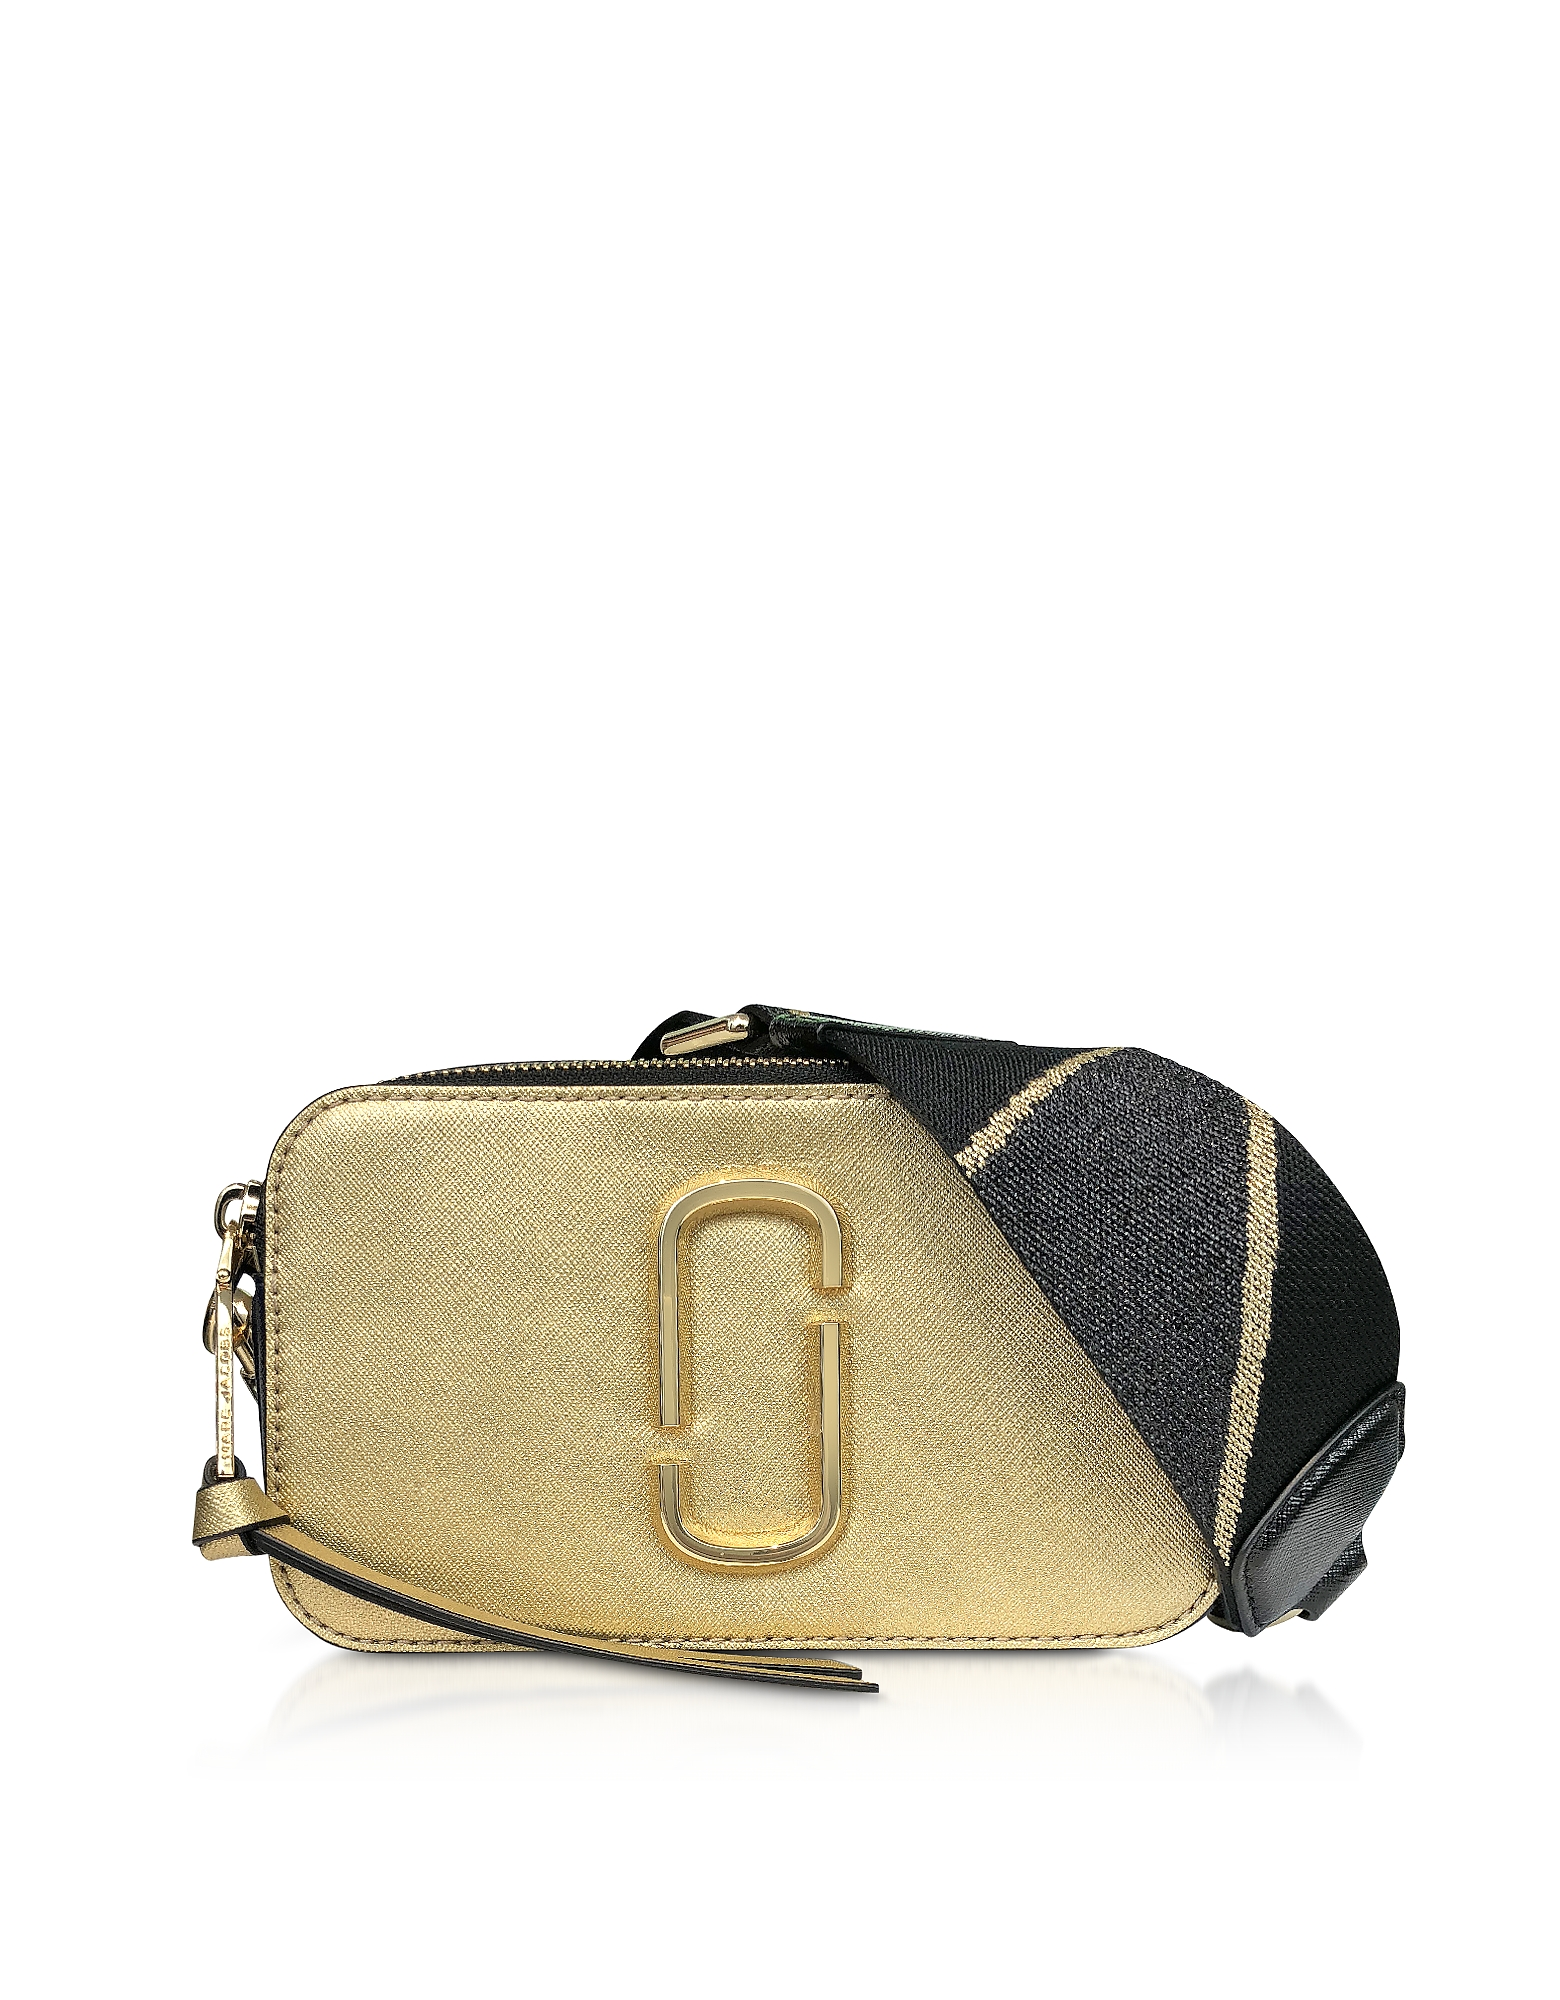 Marc Jacobs Handbags, Logo Strap Snapshot Metallic Camera Bag